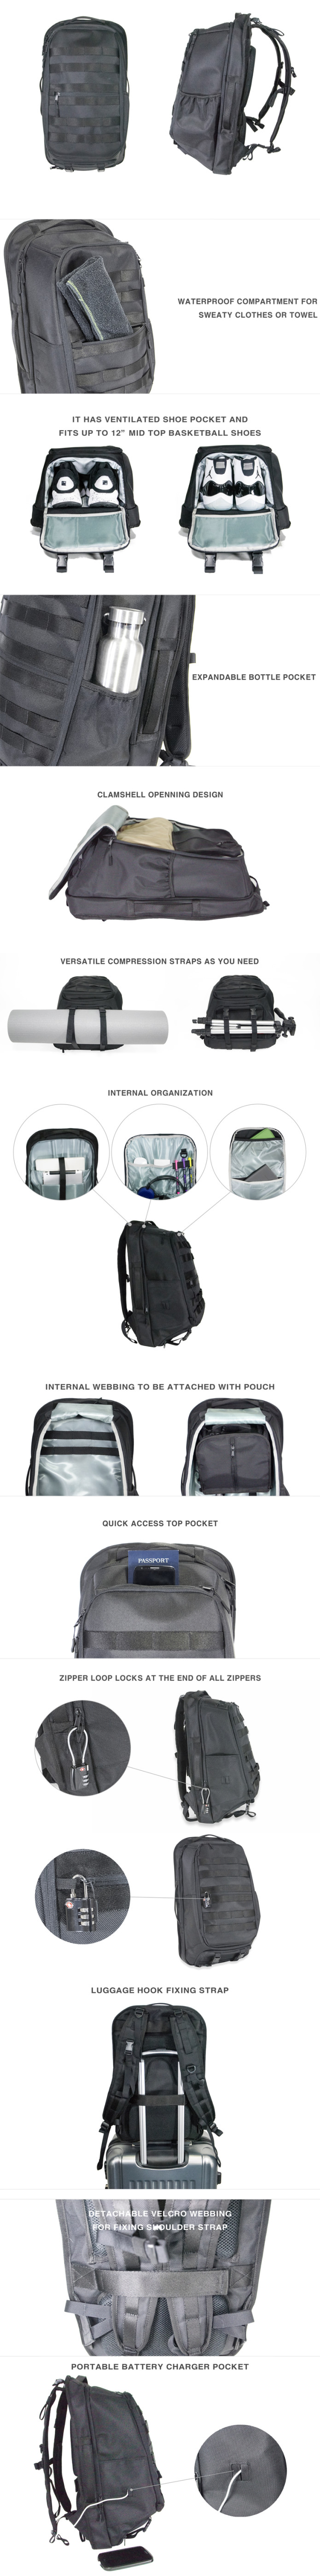 85a51187033 Bagram Pack  A Backpack for Office, Gym, Travel   Indiegogo